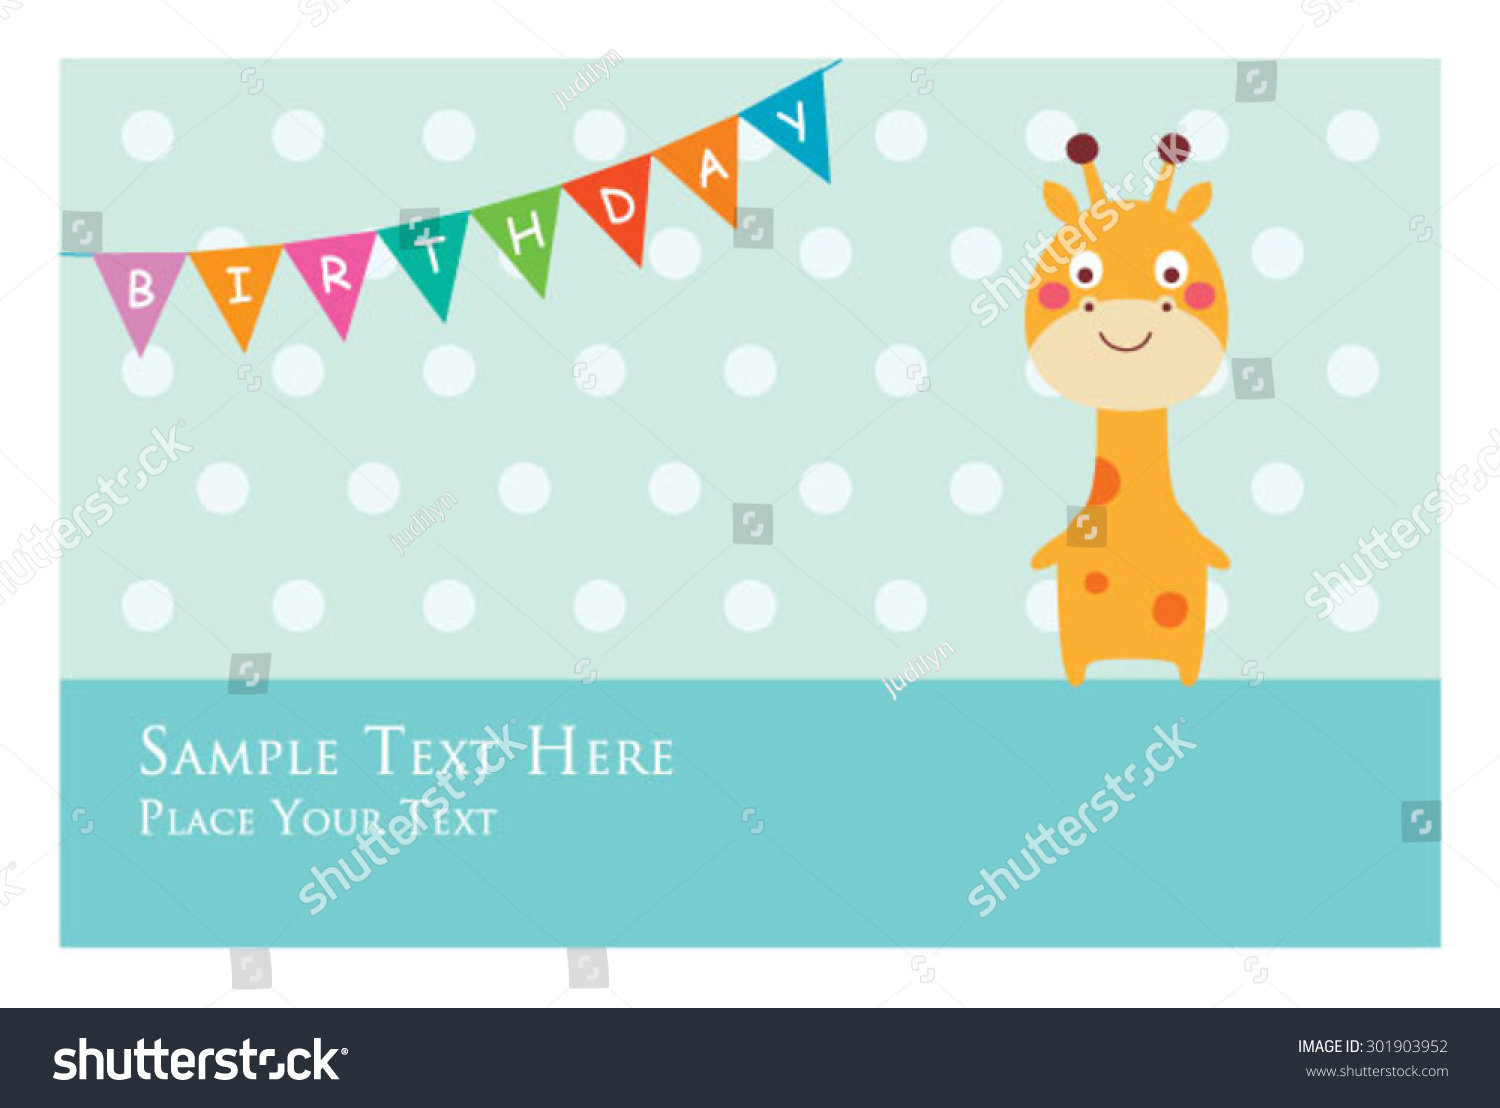 Cute Giraffe Birthday Invitation Card Stock Vector (2018) 301903952 ...